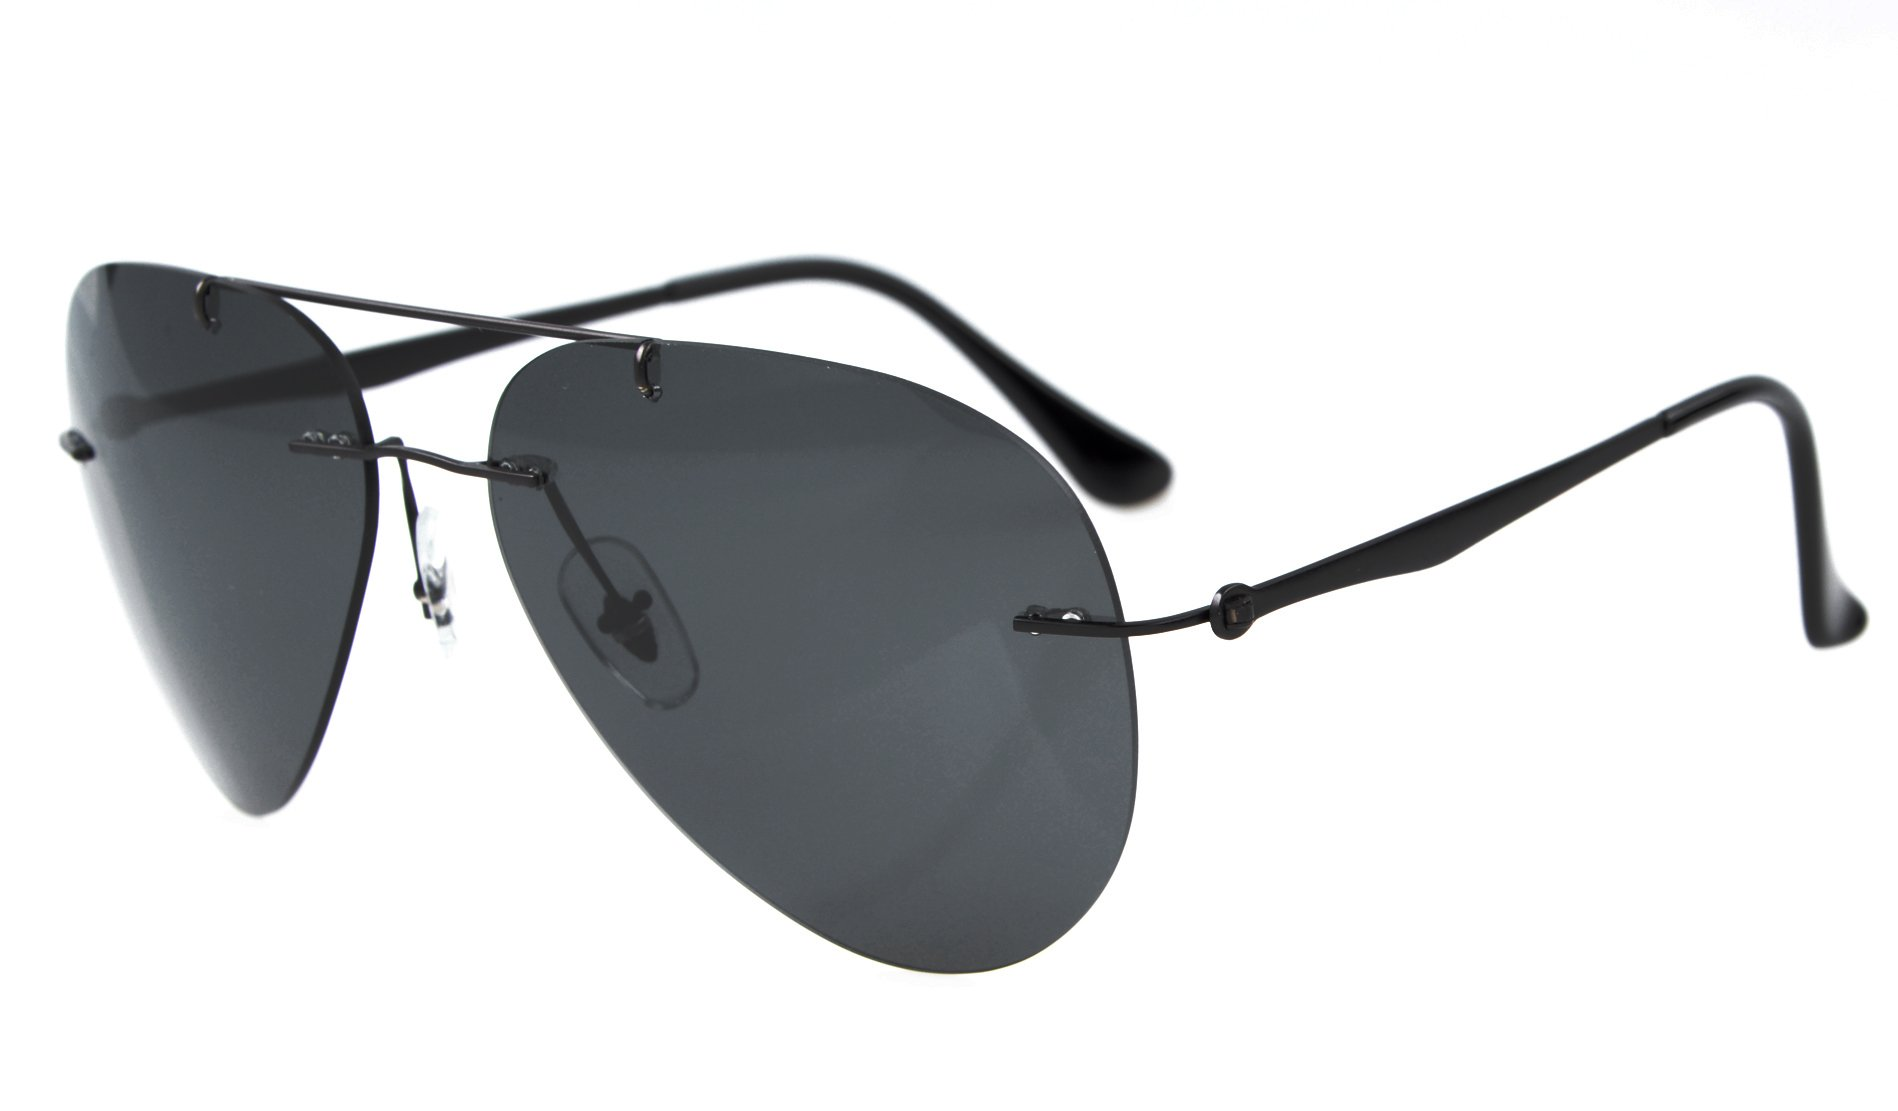 Eyekepper Titanium Style Rimless Polarized Sunglasses Grey Lens by Eyekepper